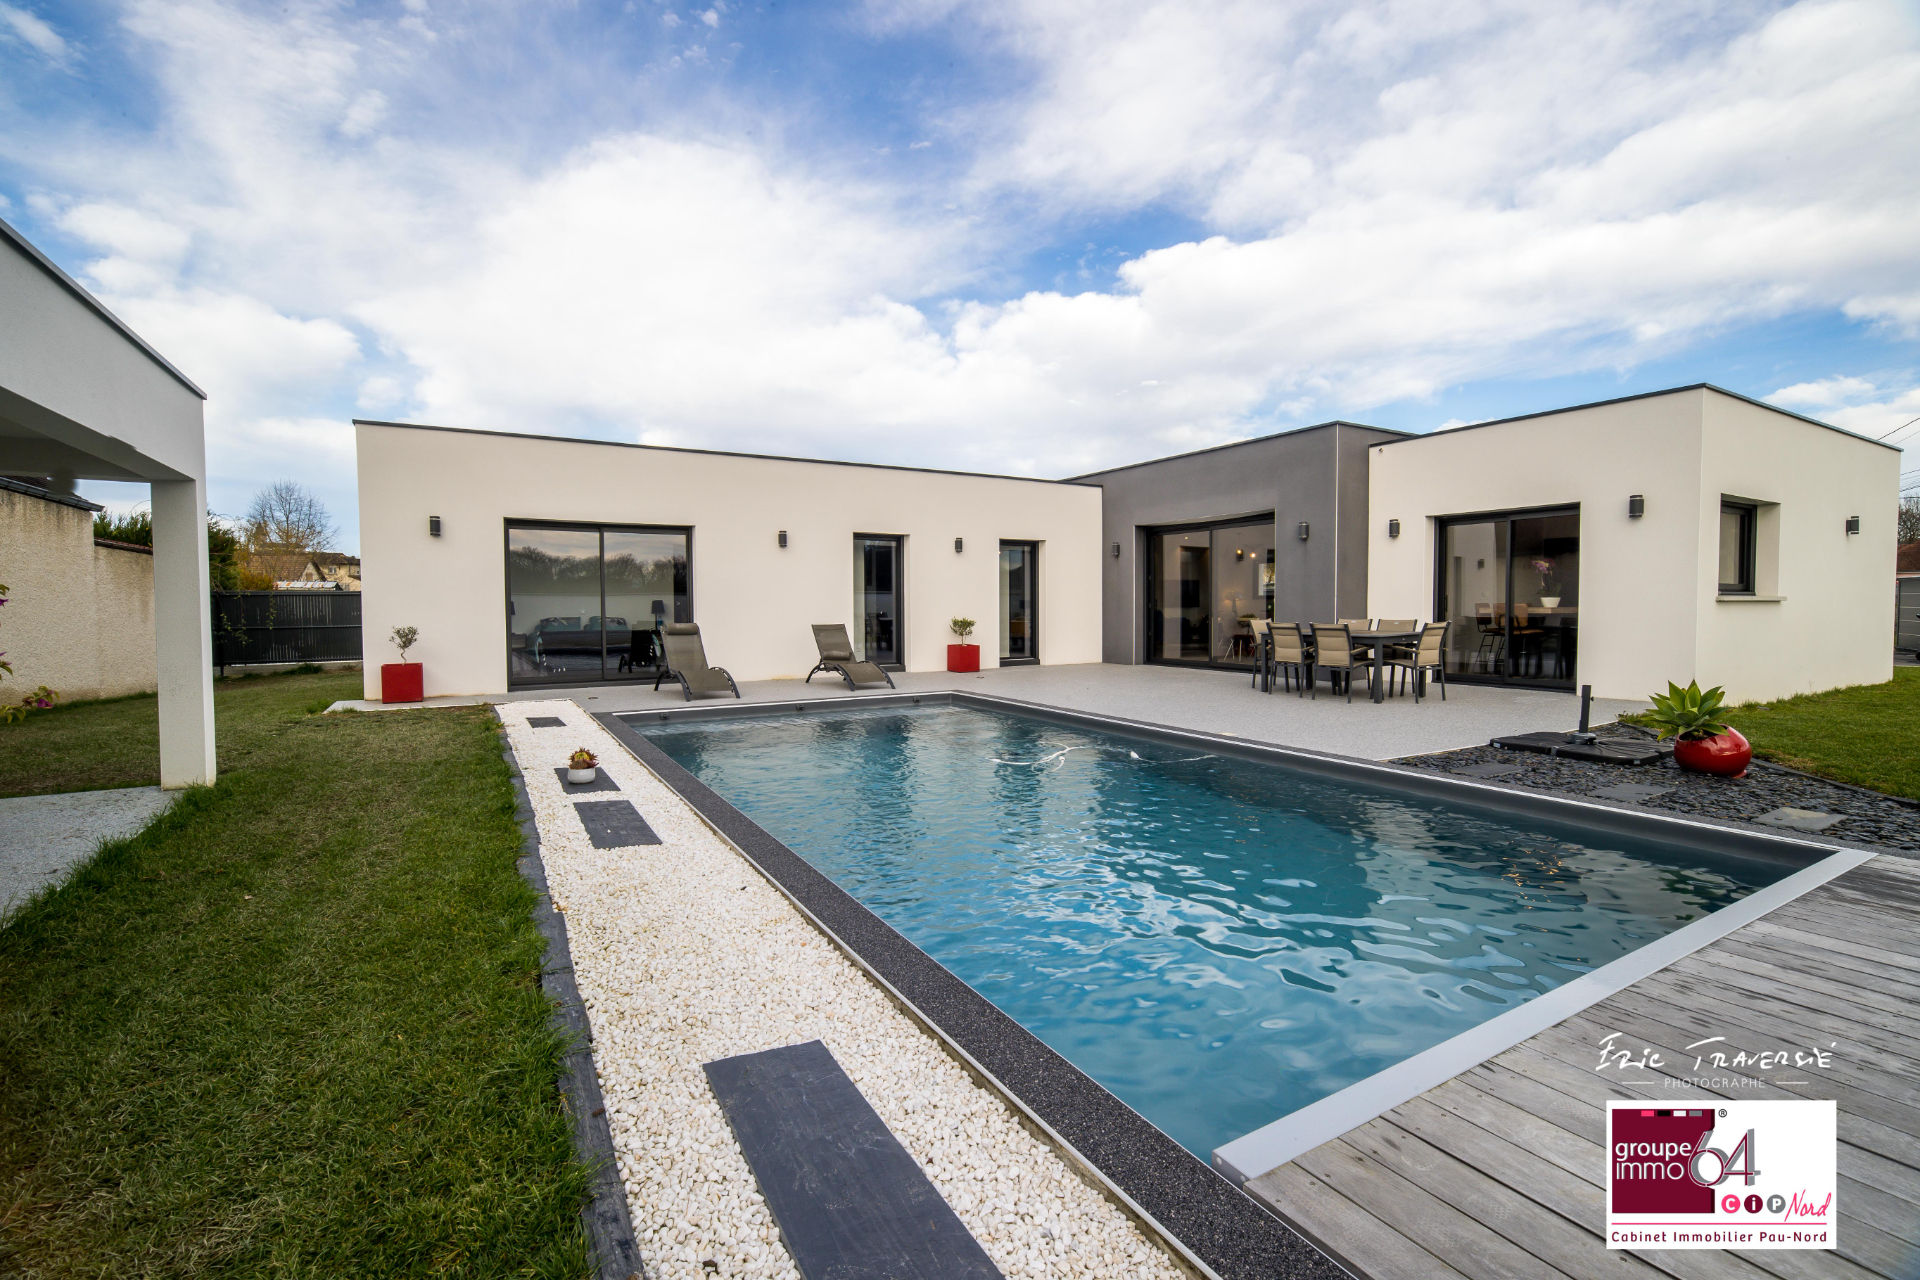 Contemporaine en toit terrasse et piscine (visite virtuelle possible)